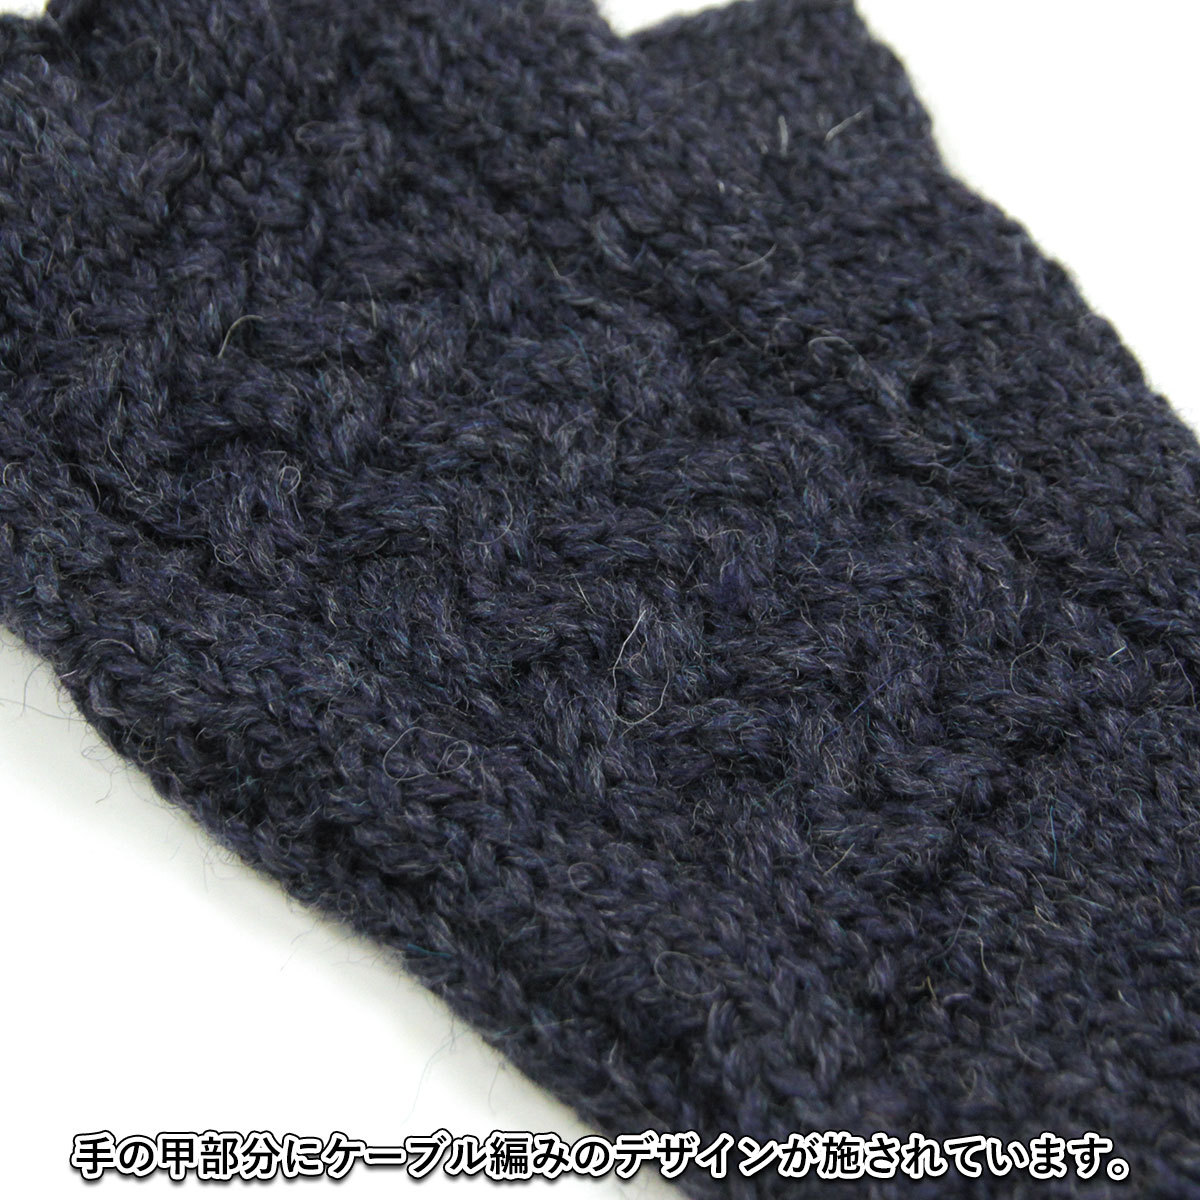 ブラックシープ BLACK SHEEP メンズ 手袋 HAND MADE FINGERLESS CABLE KNIT GLOVE SB08B DENIM MIX